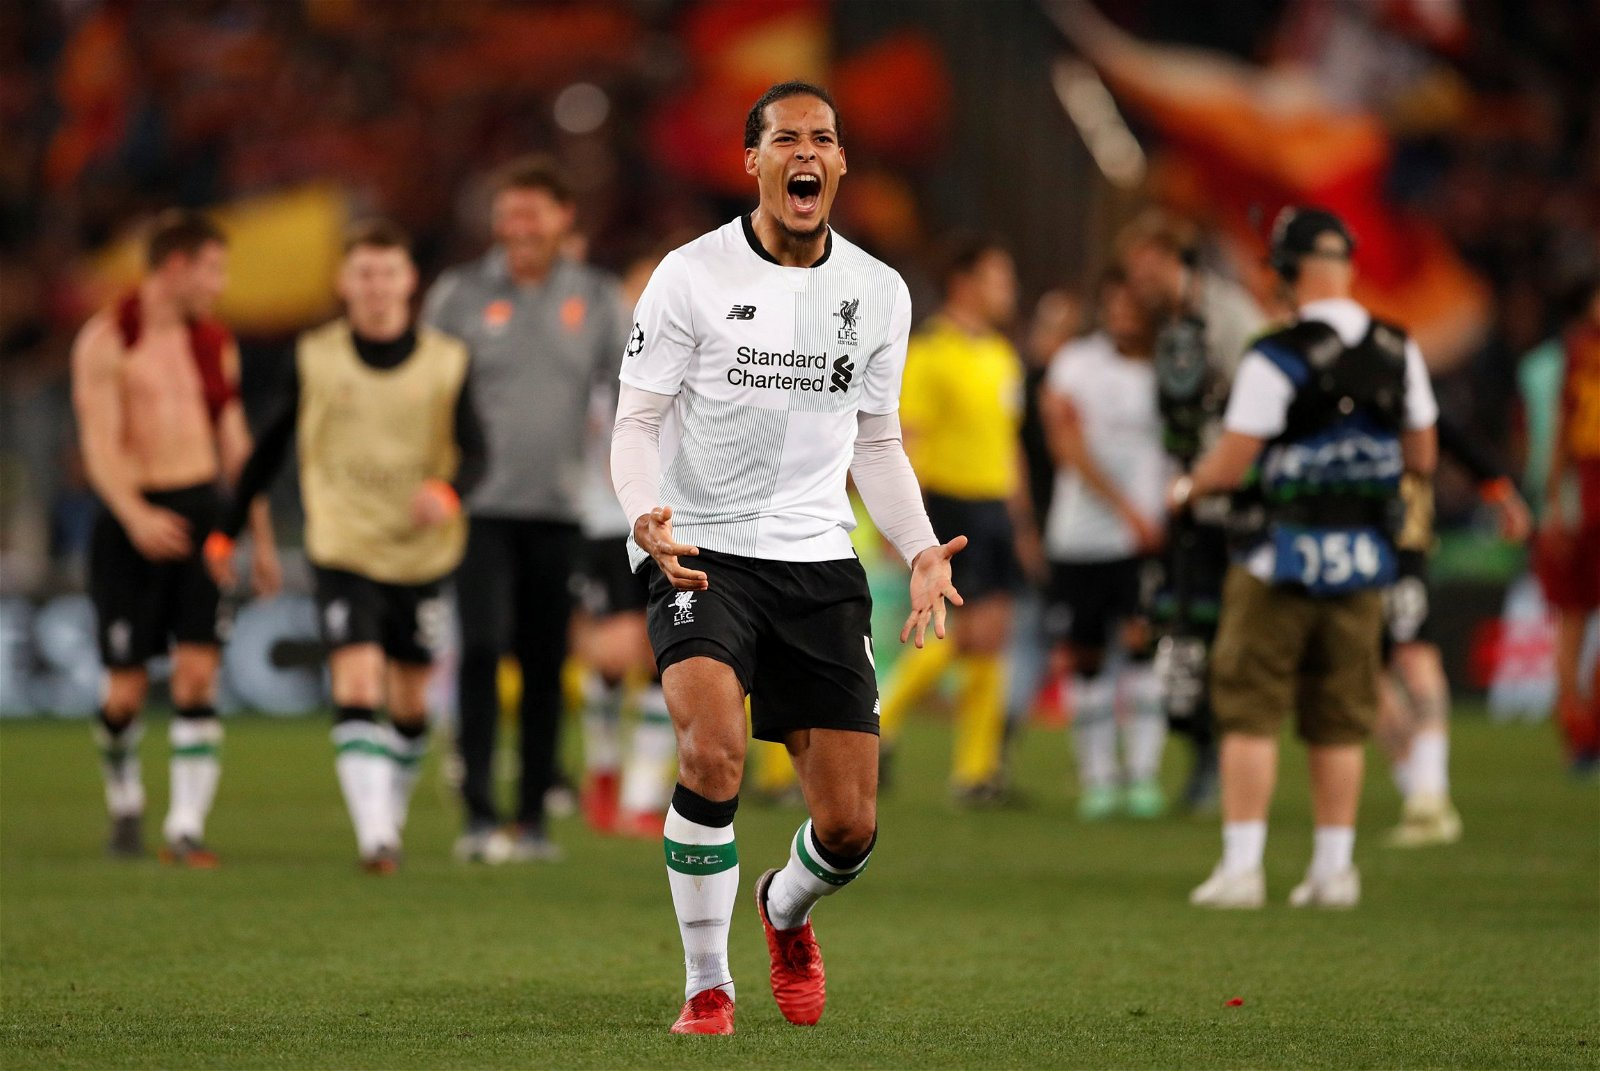 Virgil van Dijk celebrates making the Champions League final with Liverpool